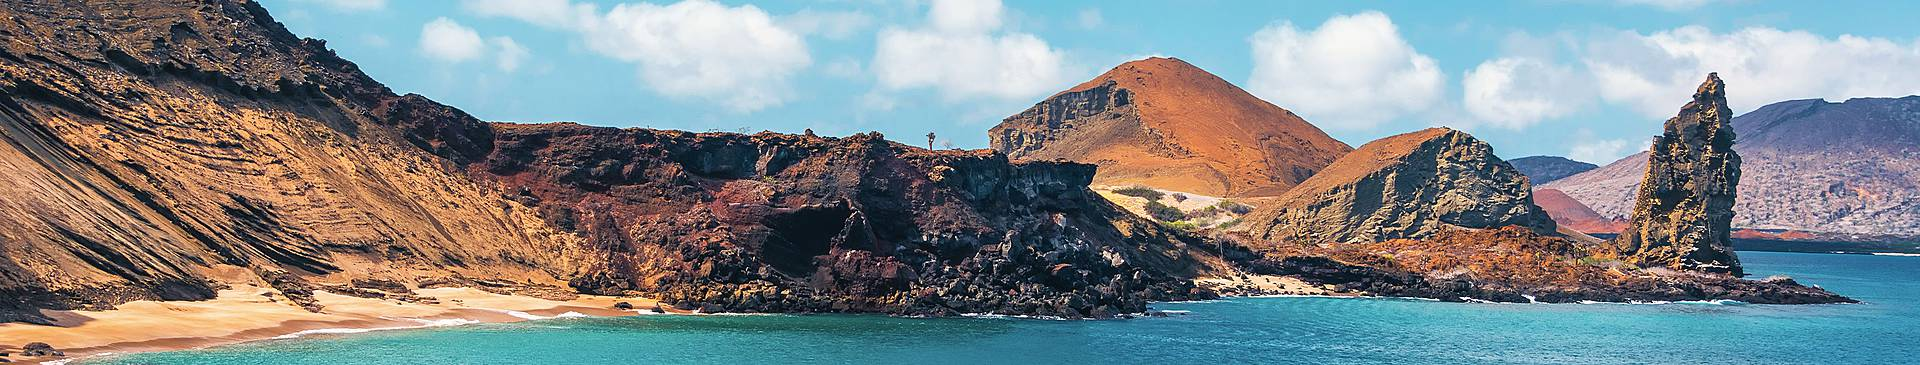 Beaches in the Galapagos Islands